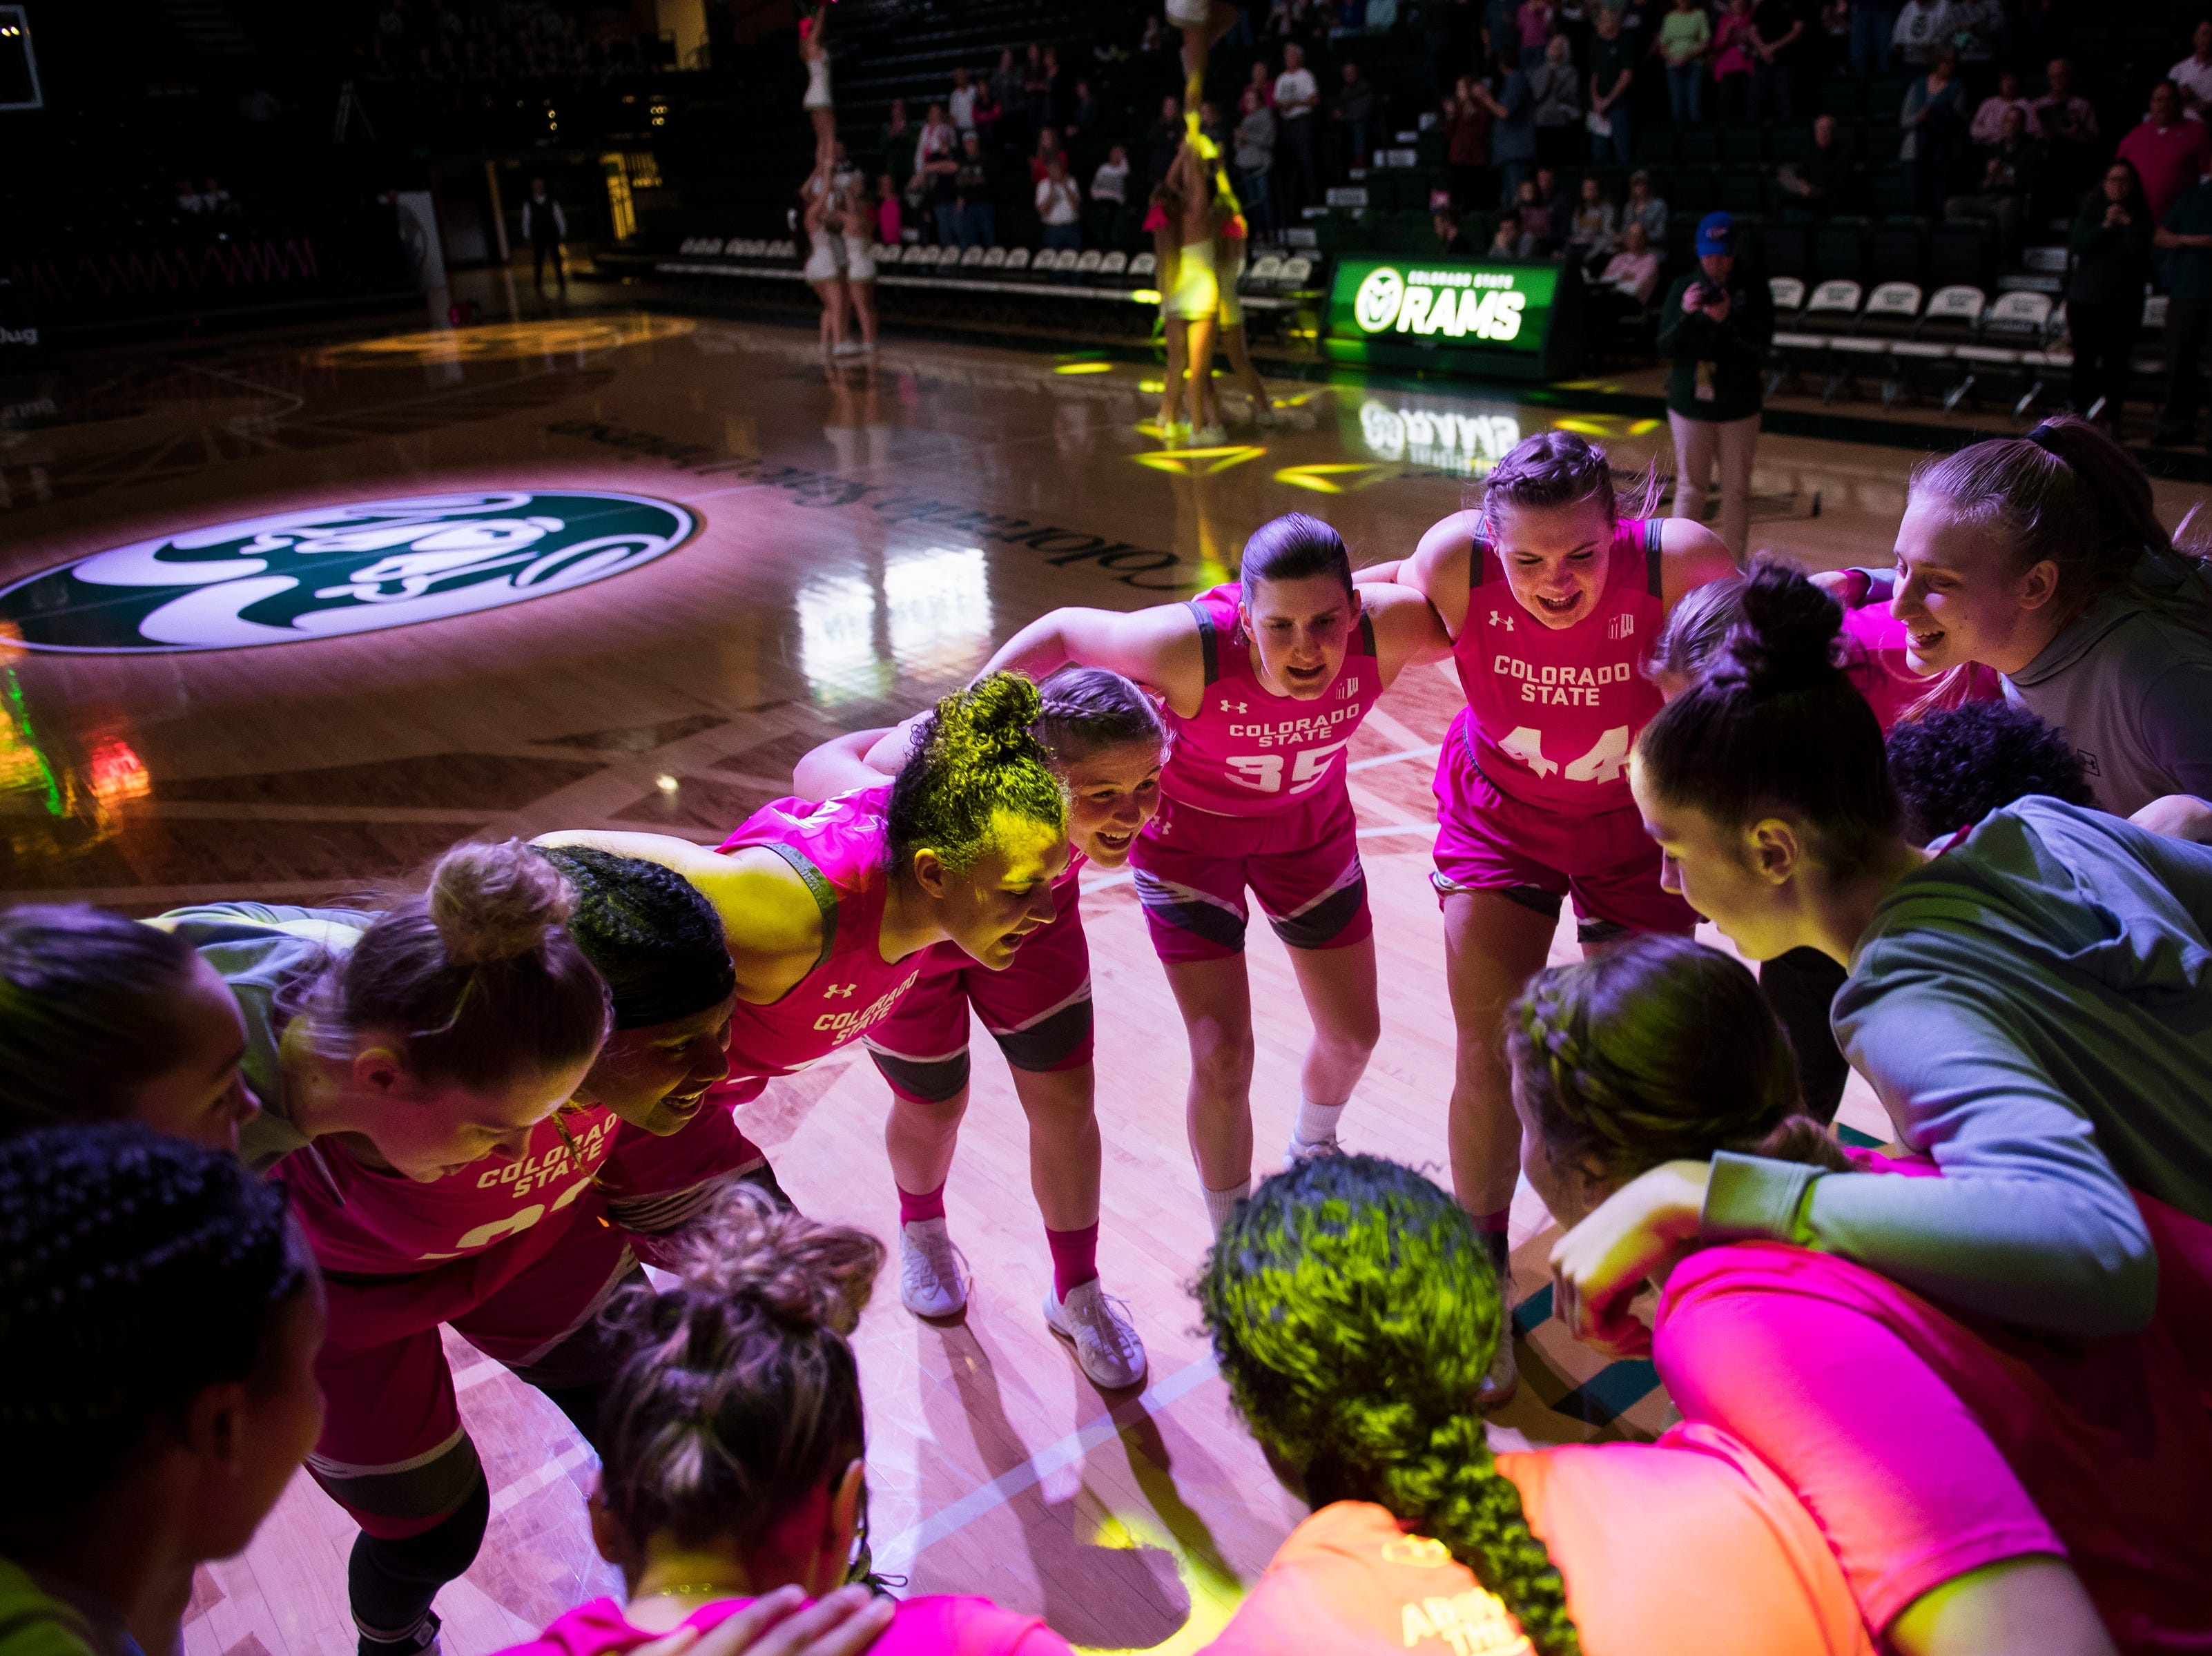 The Colorado State University women's basketball team huddles up before taking the court in a game against Utah State on Saturday, Jan. 19, 2019, at Moby Arena in Fort Collins, Colo.